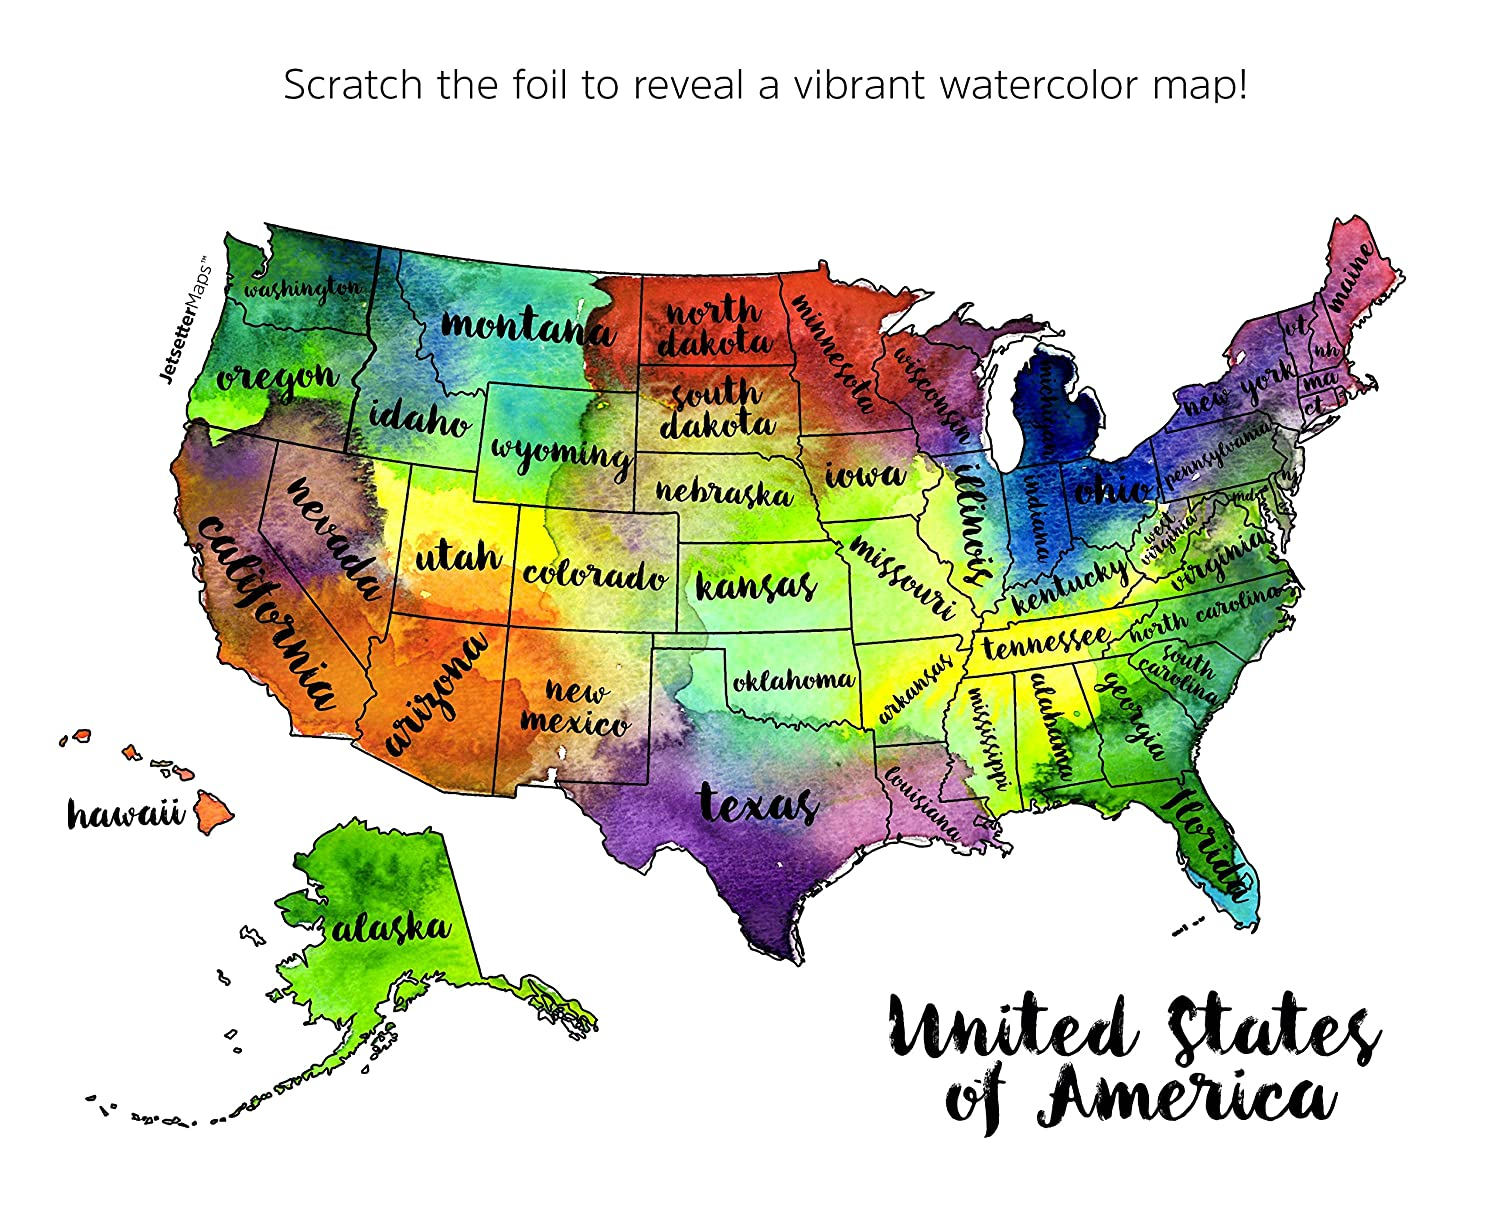 Amazon jetsettermaps scratch your travels united states of amazon jetsettermaps scratch your travels united states of america usa us watercolor art map 12x18in poster office products gumiabroncs Image collections